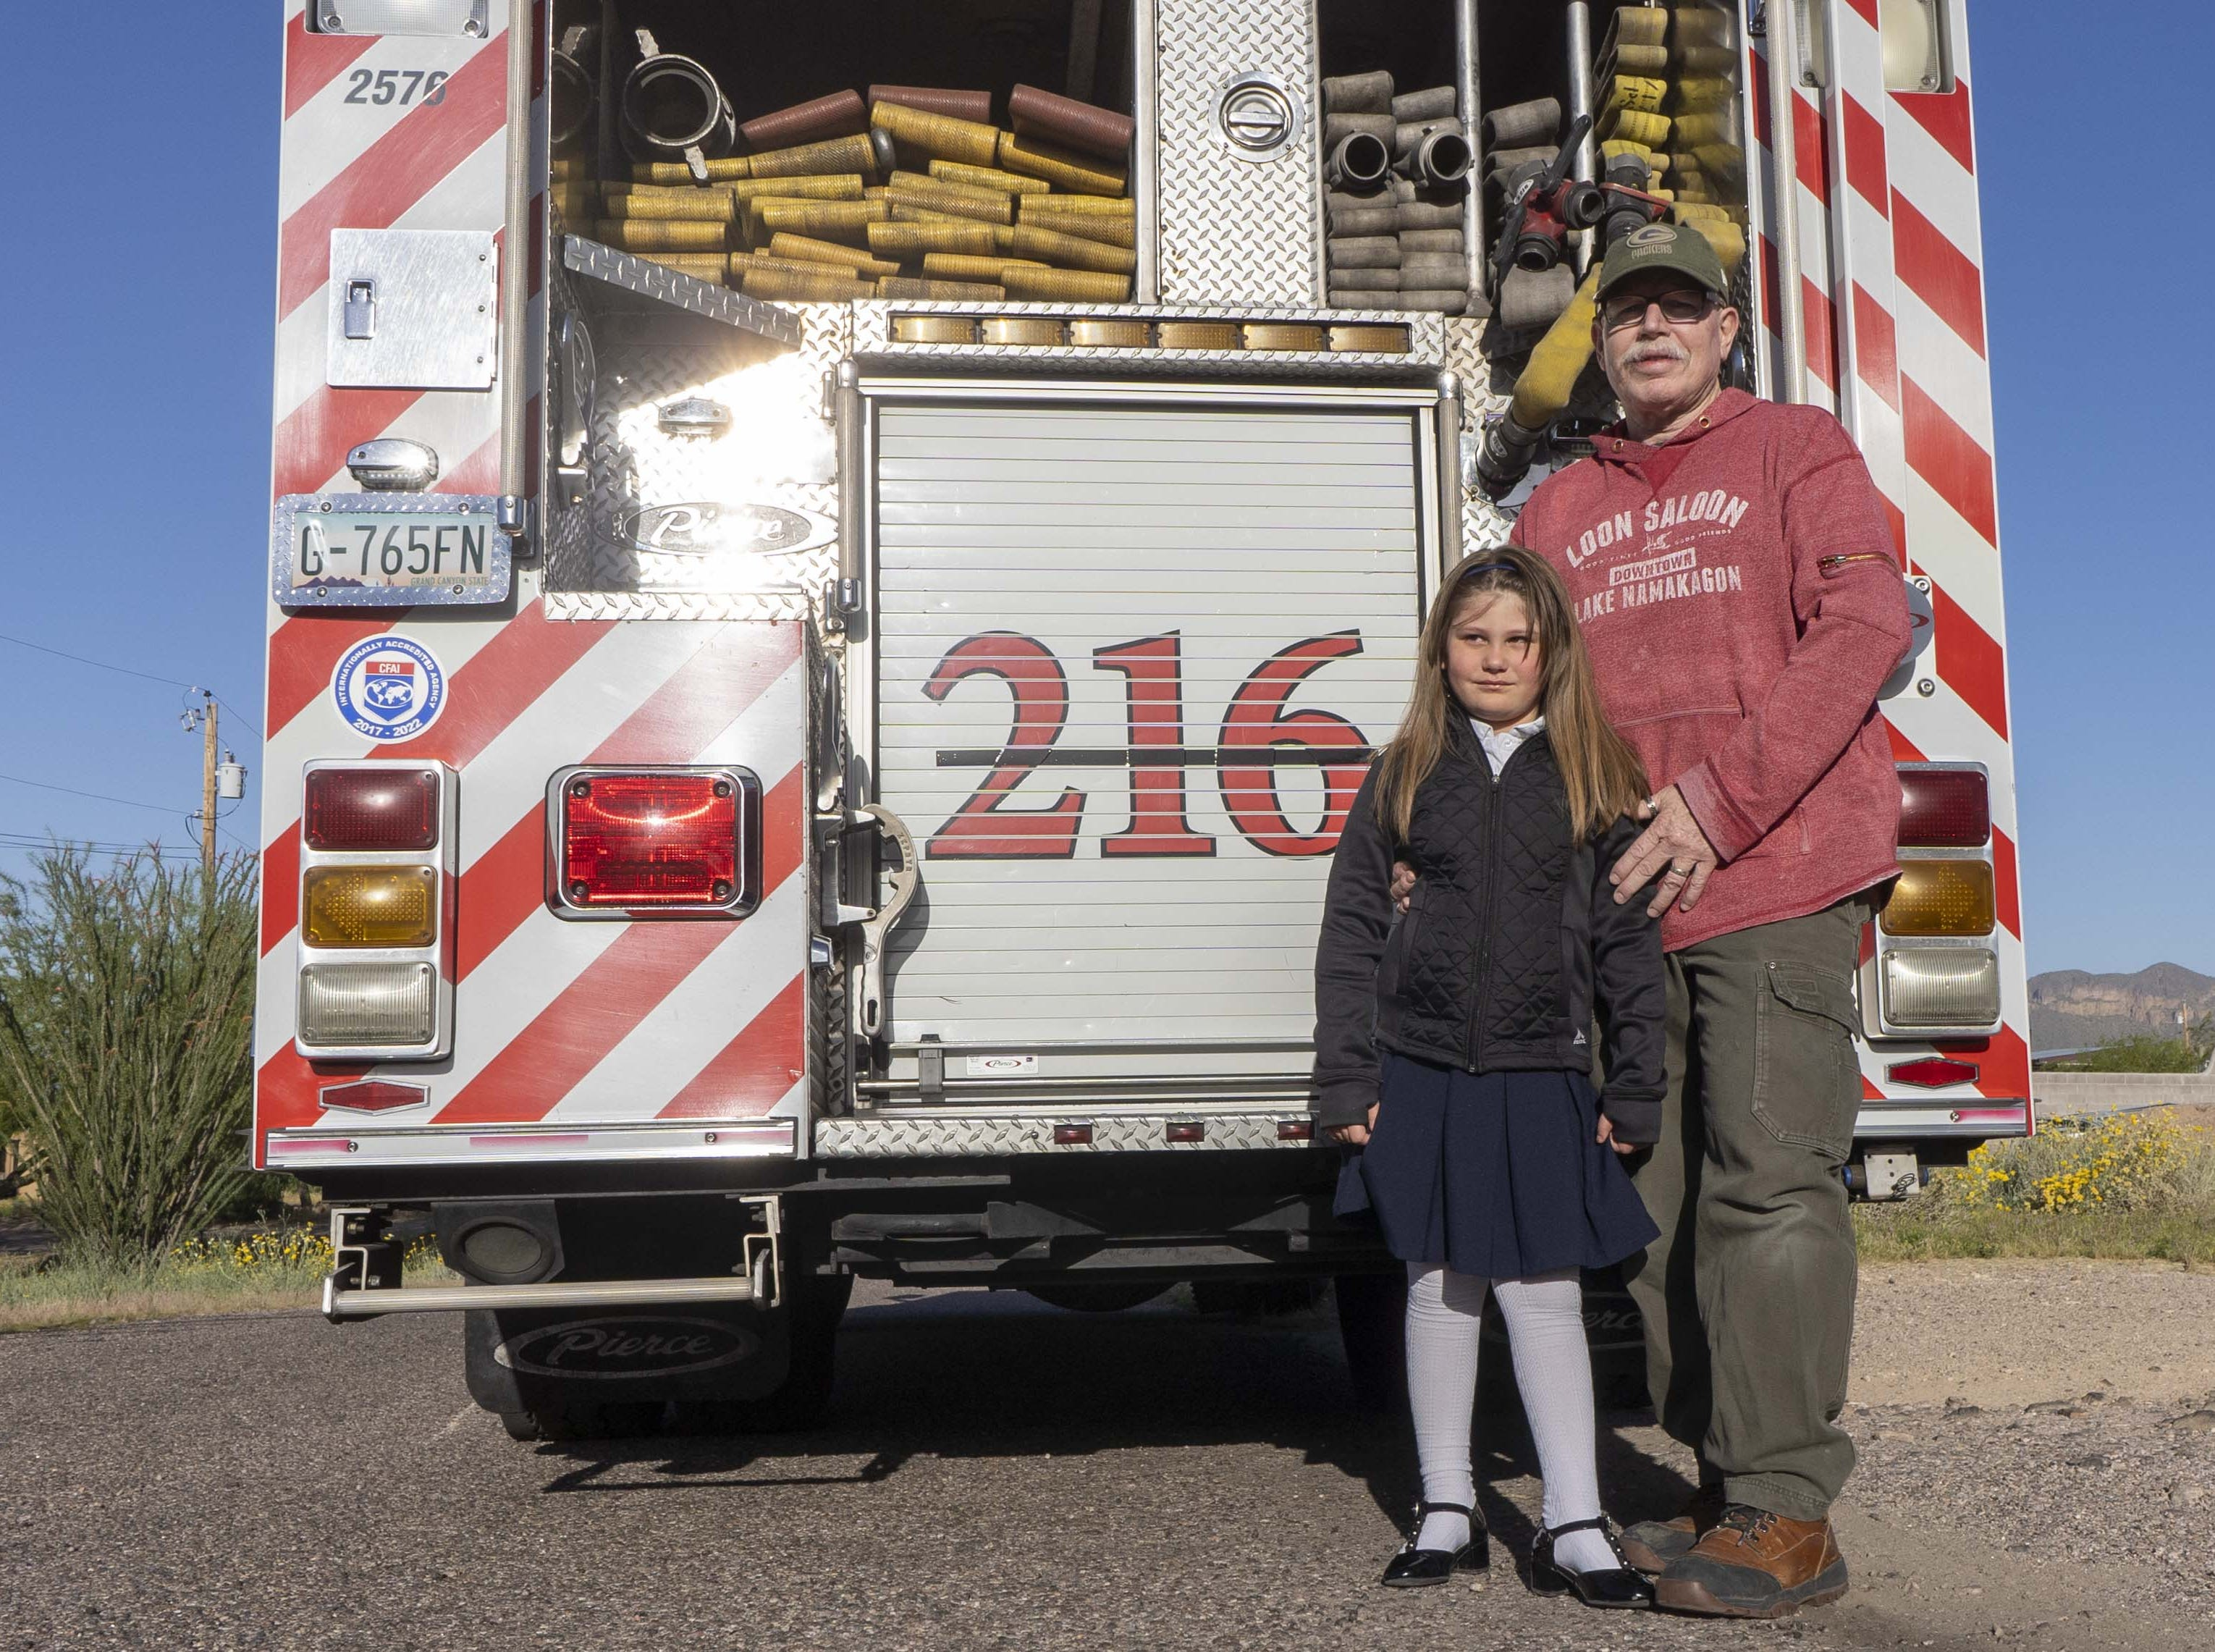 Portrait of Tim Sullivan with his 6-year-old Abi riding in a fire engine #216. Abi is the daughter of Nikki Sullivan, who medically retired in 2015 due to occupational cancer and died last Wednesday. The fire crew will drive Abi, Tim (Nikki's husband and retired fire captain) to the school.